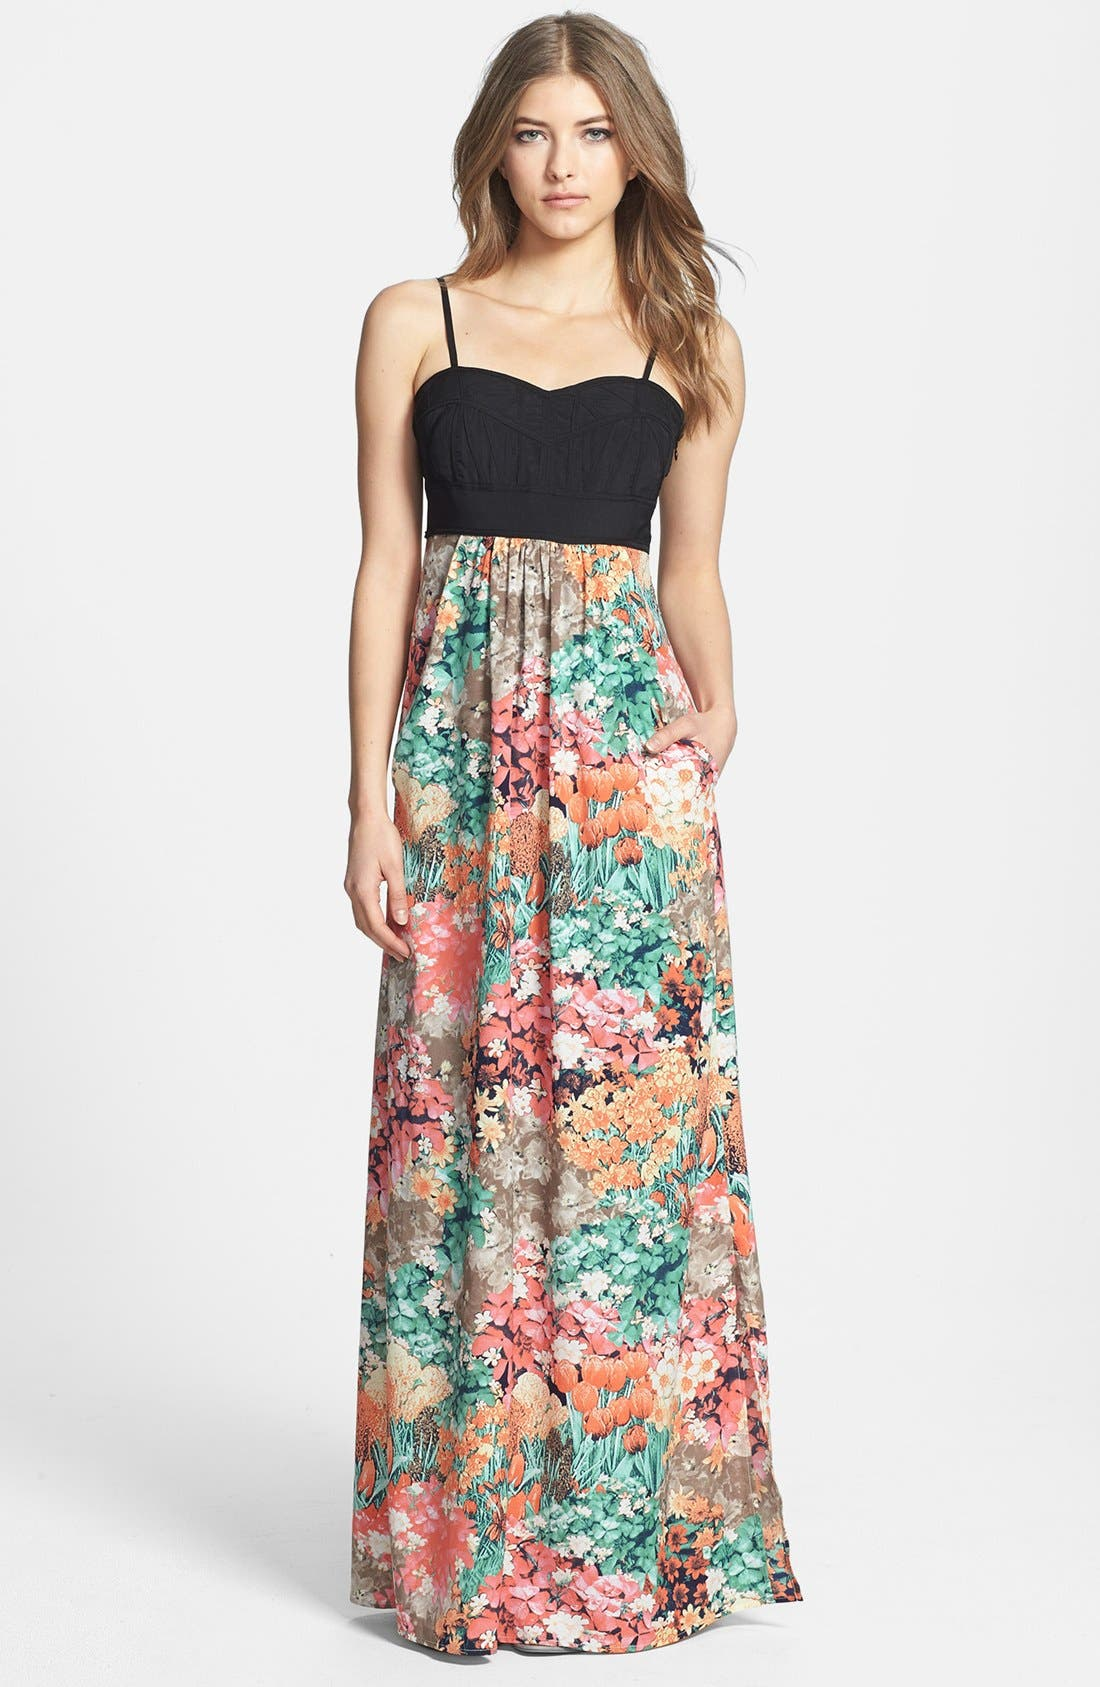 Main Image - MM Couture Floral Print Skirt Maxi Dress